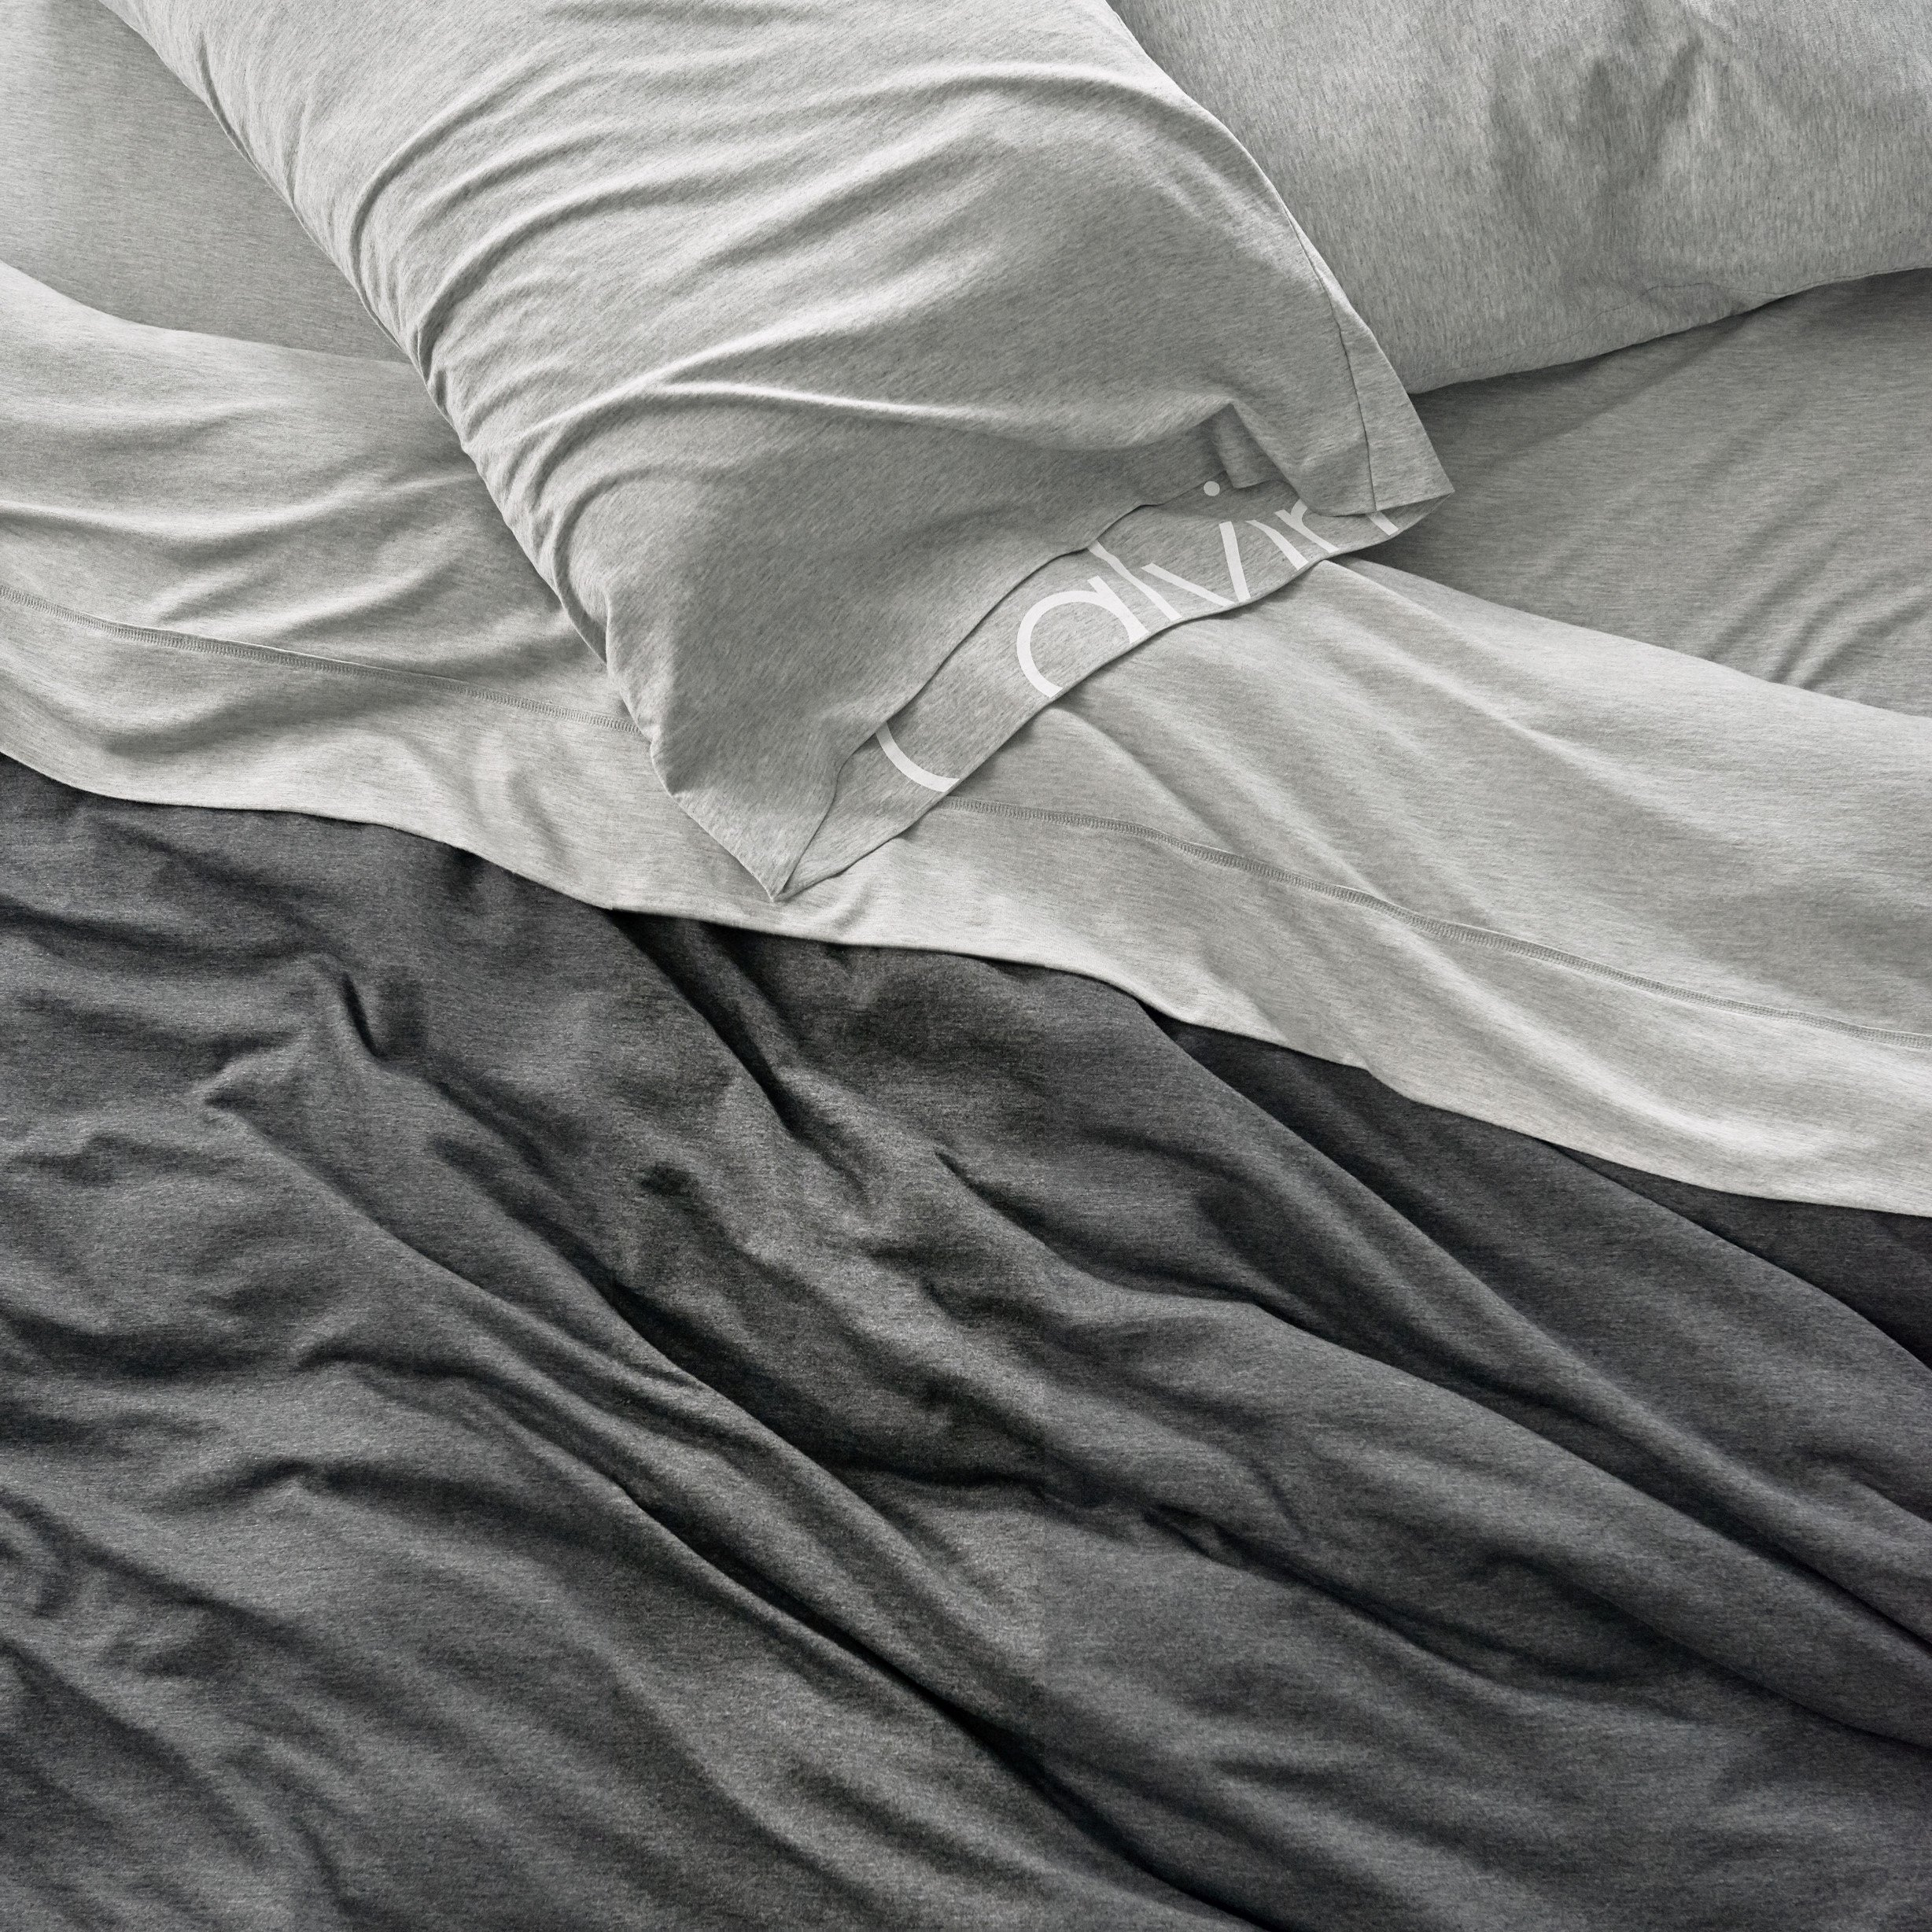 Calvin Klein Home Modern Cotton Body Duvet Cover, King, Charcoal by Calvin Klein (Image #5)